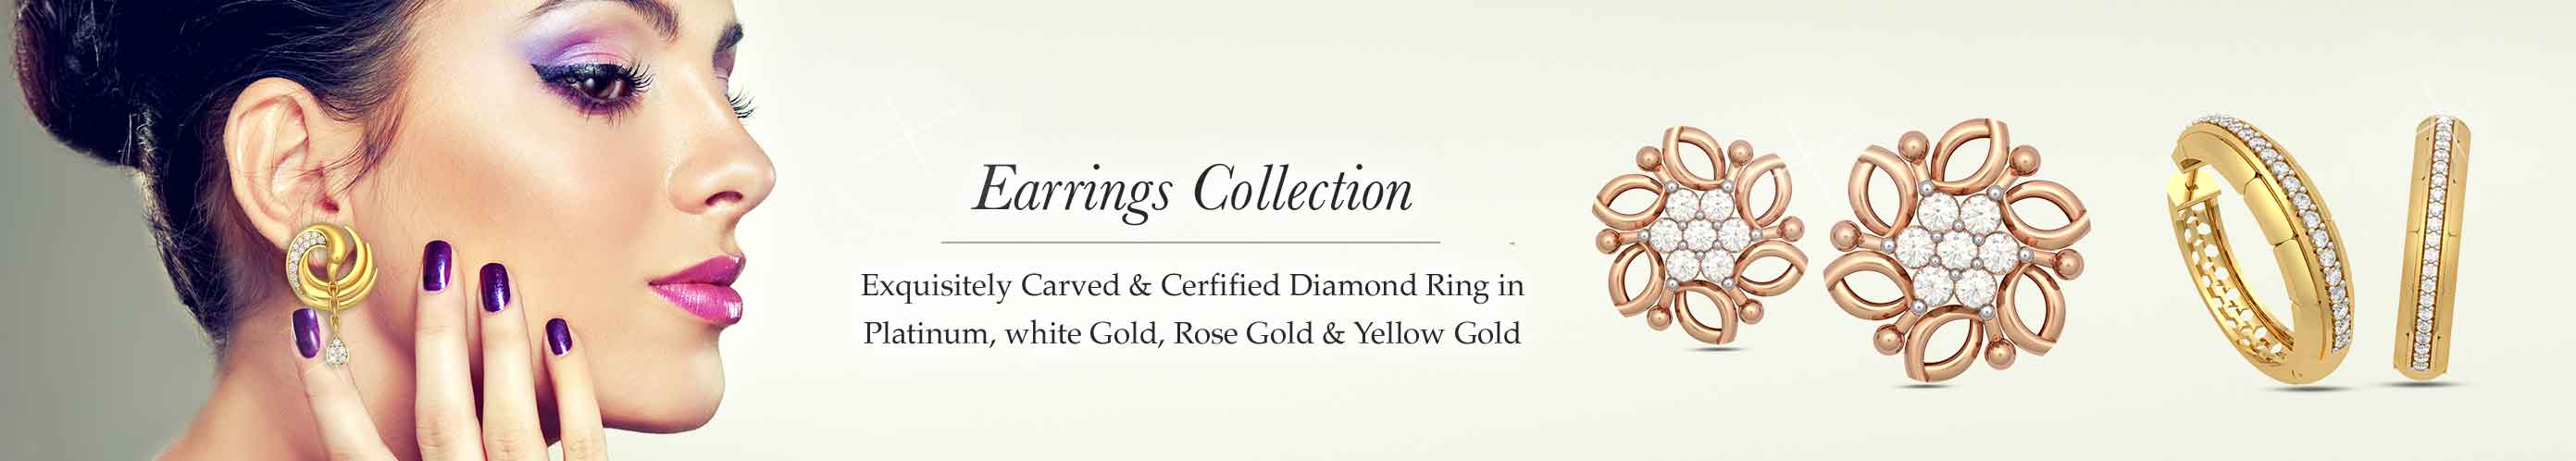 Local Jewelry Designers Baltimore Maryland